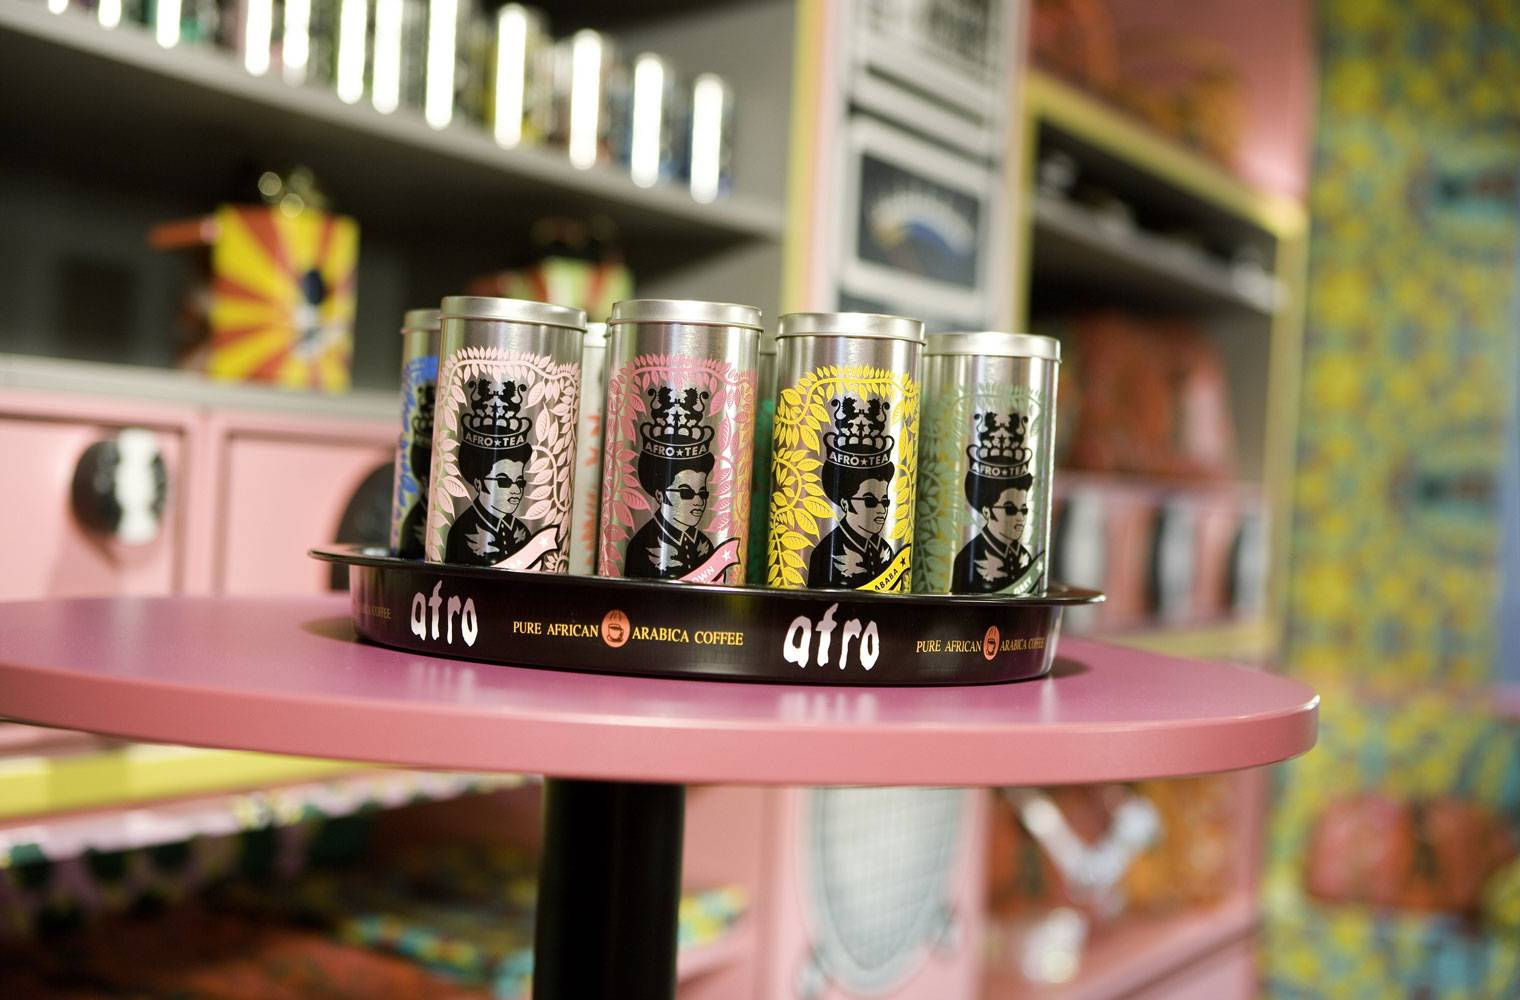 Afro Cafe, Saltzburg - Packaging